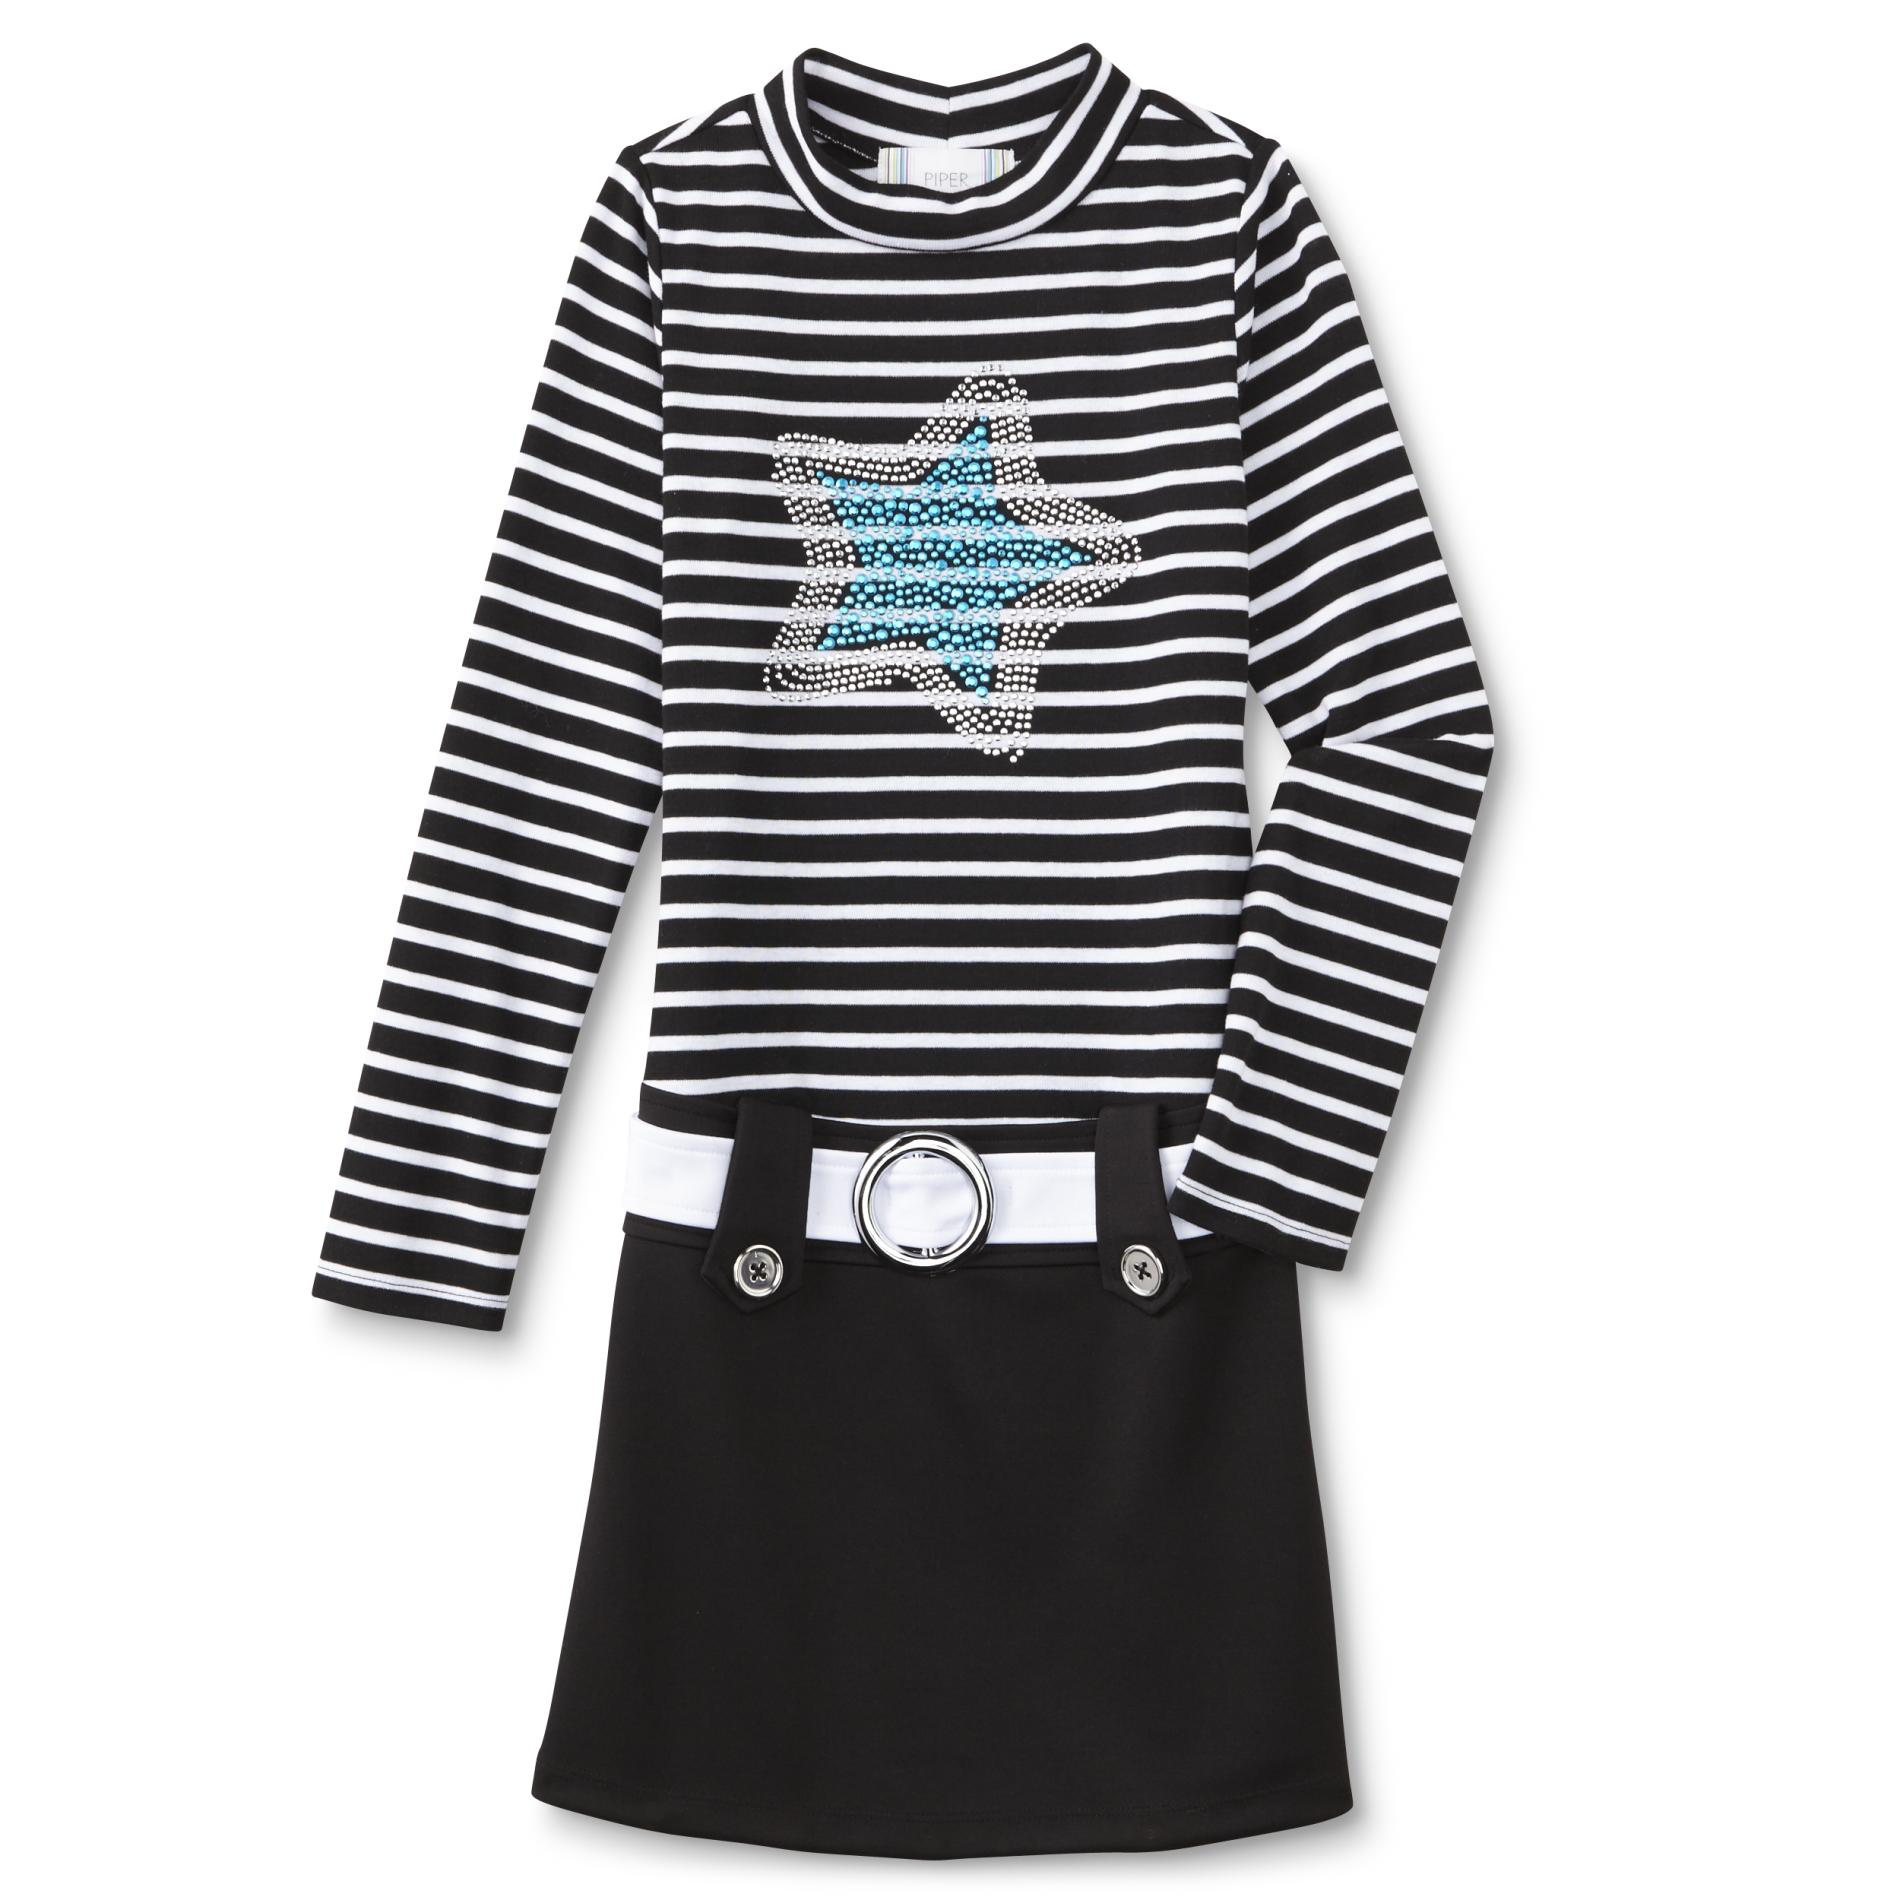 Piper Girl's Long-Sleeve Marsha Dress - Star & Stripes PartNumber: 049VA90574112P MfgPartNumber: JD855640H5